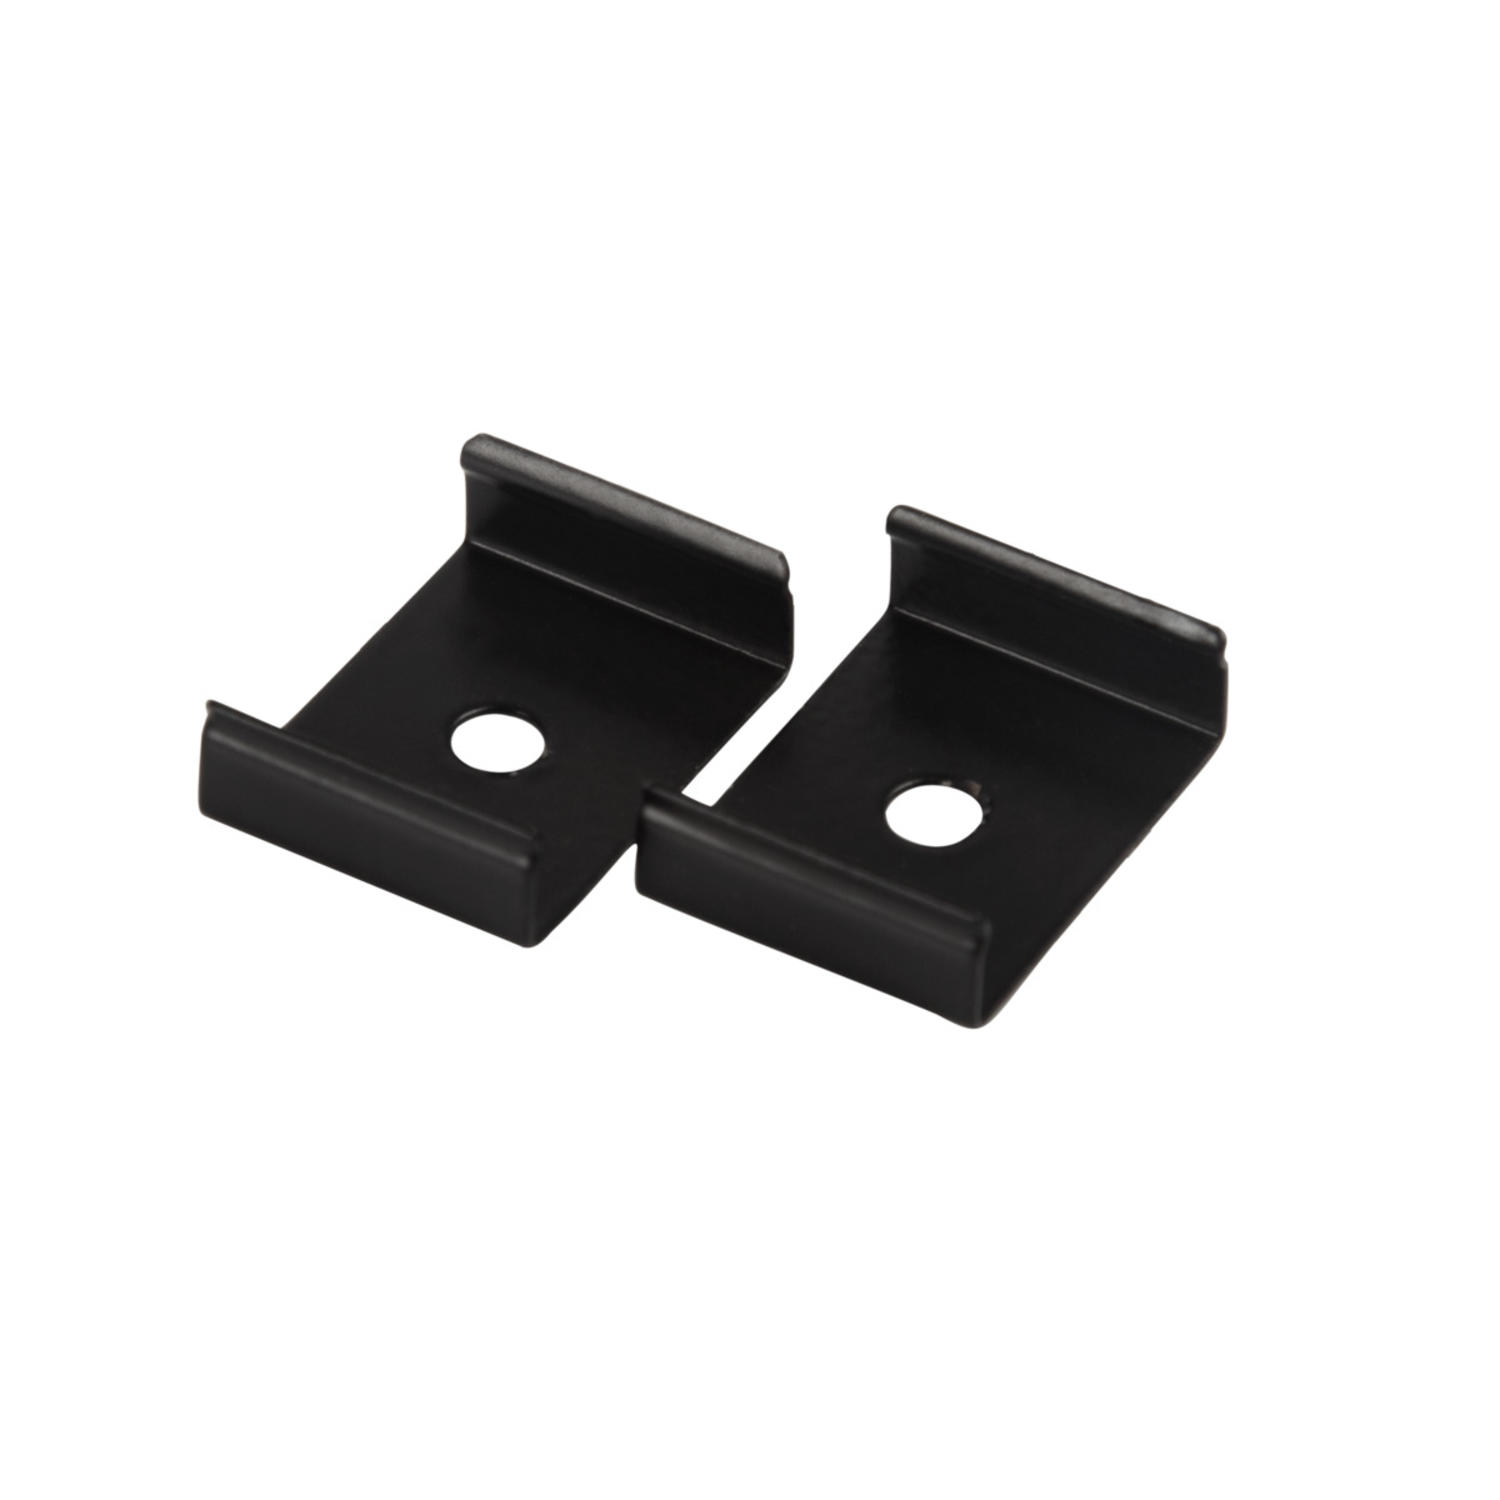 Clips Art Black 2pcs